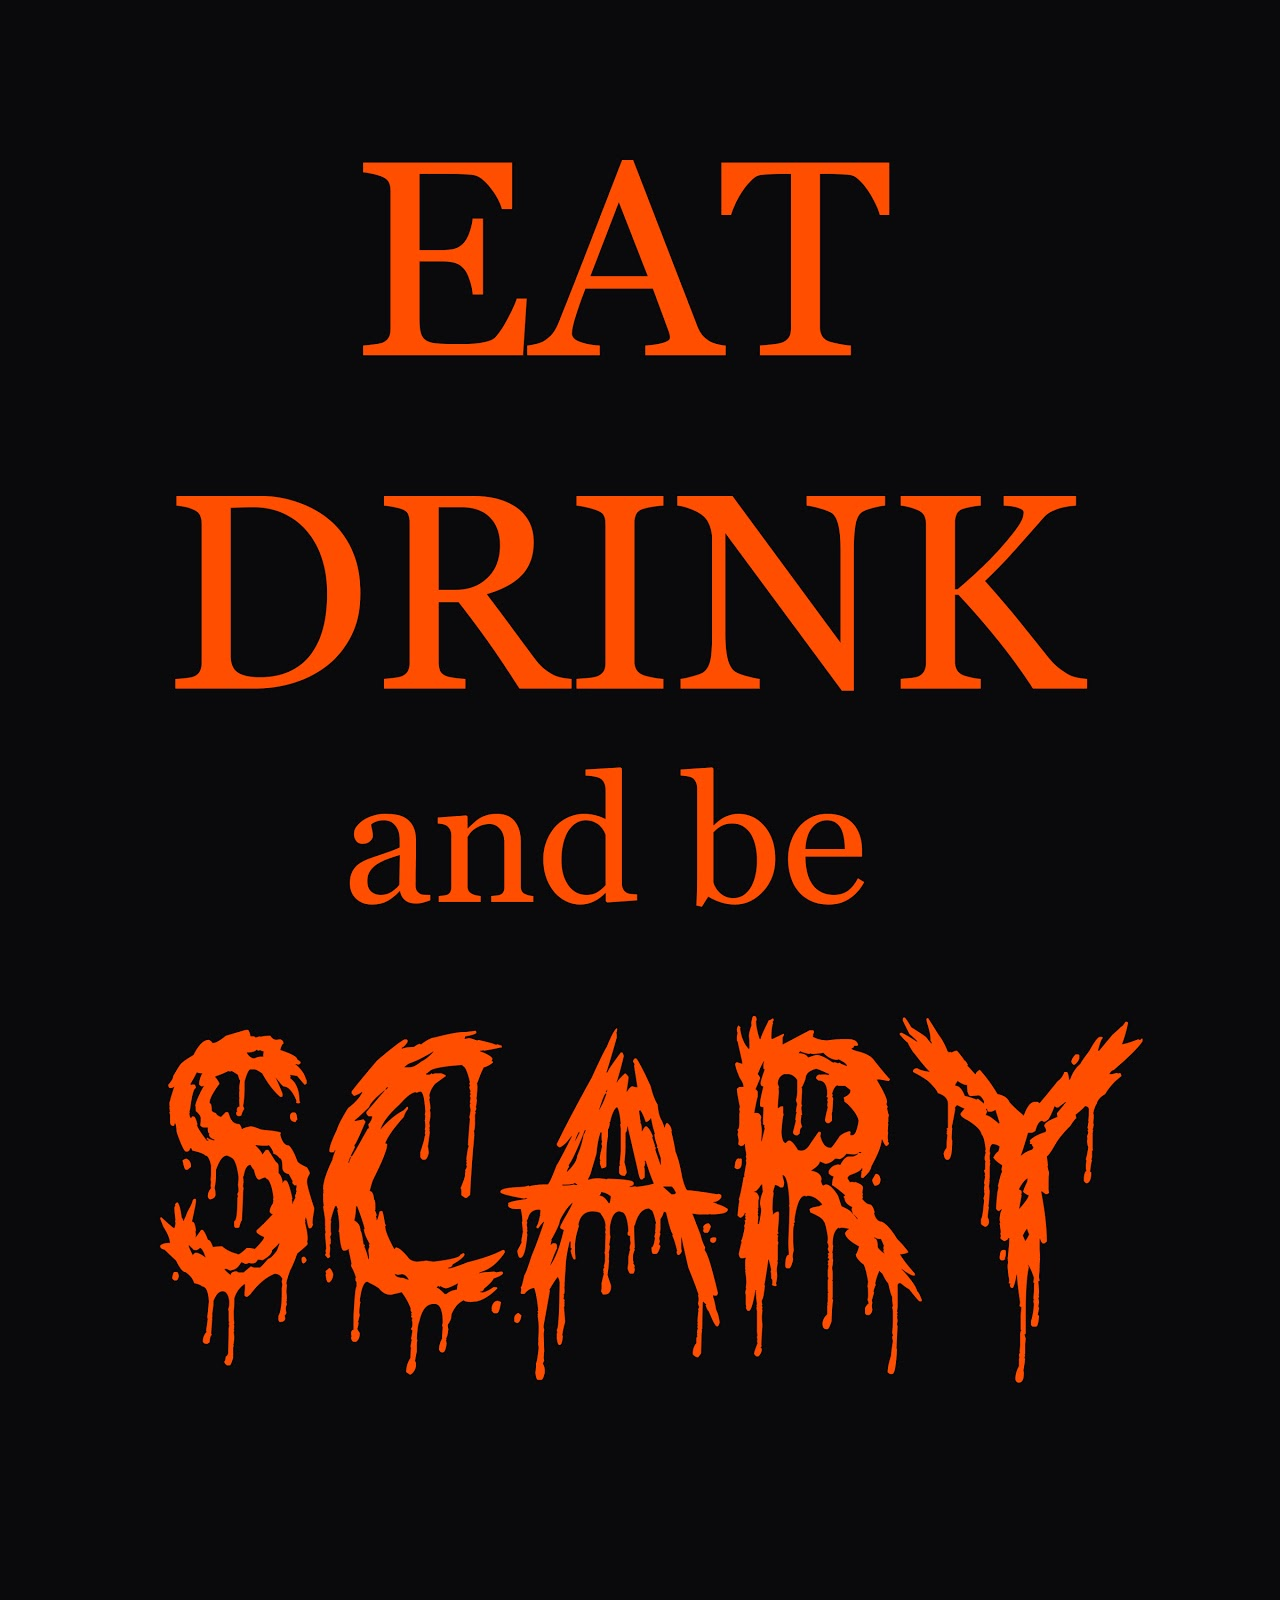 Join us for the 4th Annual Eat, Drink, & Be Scary! We have changed locations and have added some great entertainment. Ticket prices include all drinks, food, parking, entertainment, and prize opportunities. Music provided by Kirbys Dreamland and DJ Michael Schad. Photo booth and other photo opportunities.